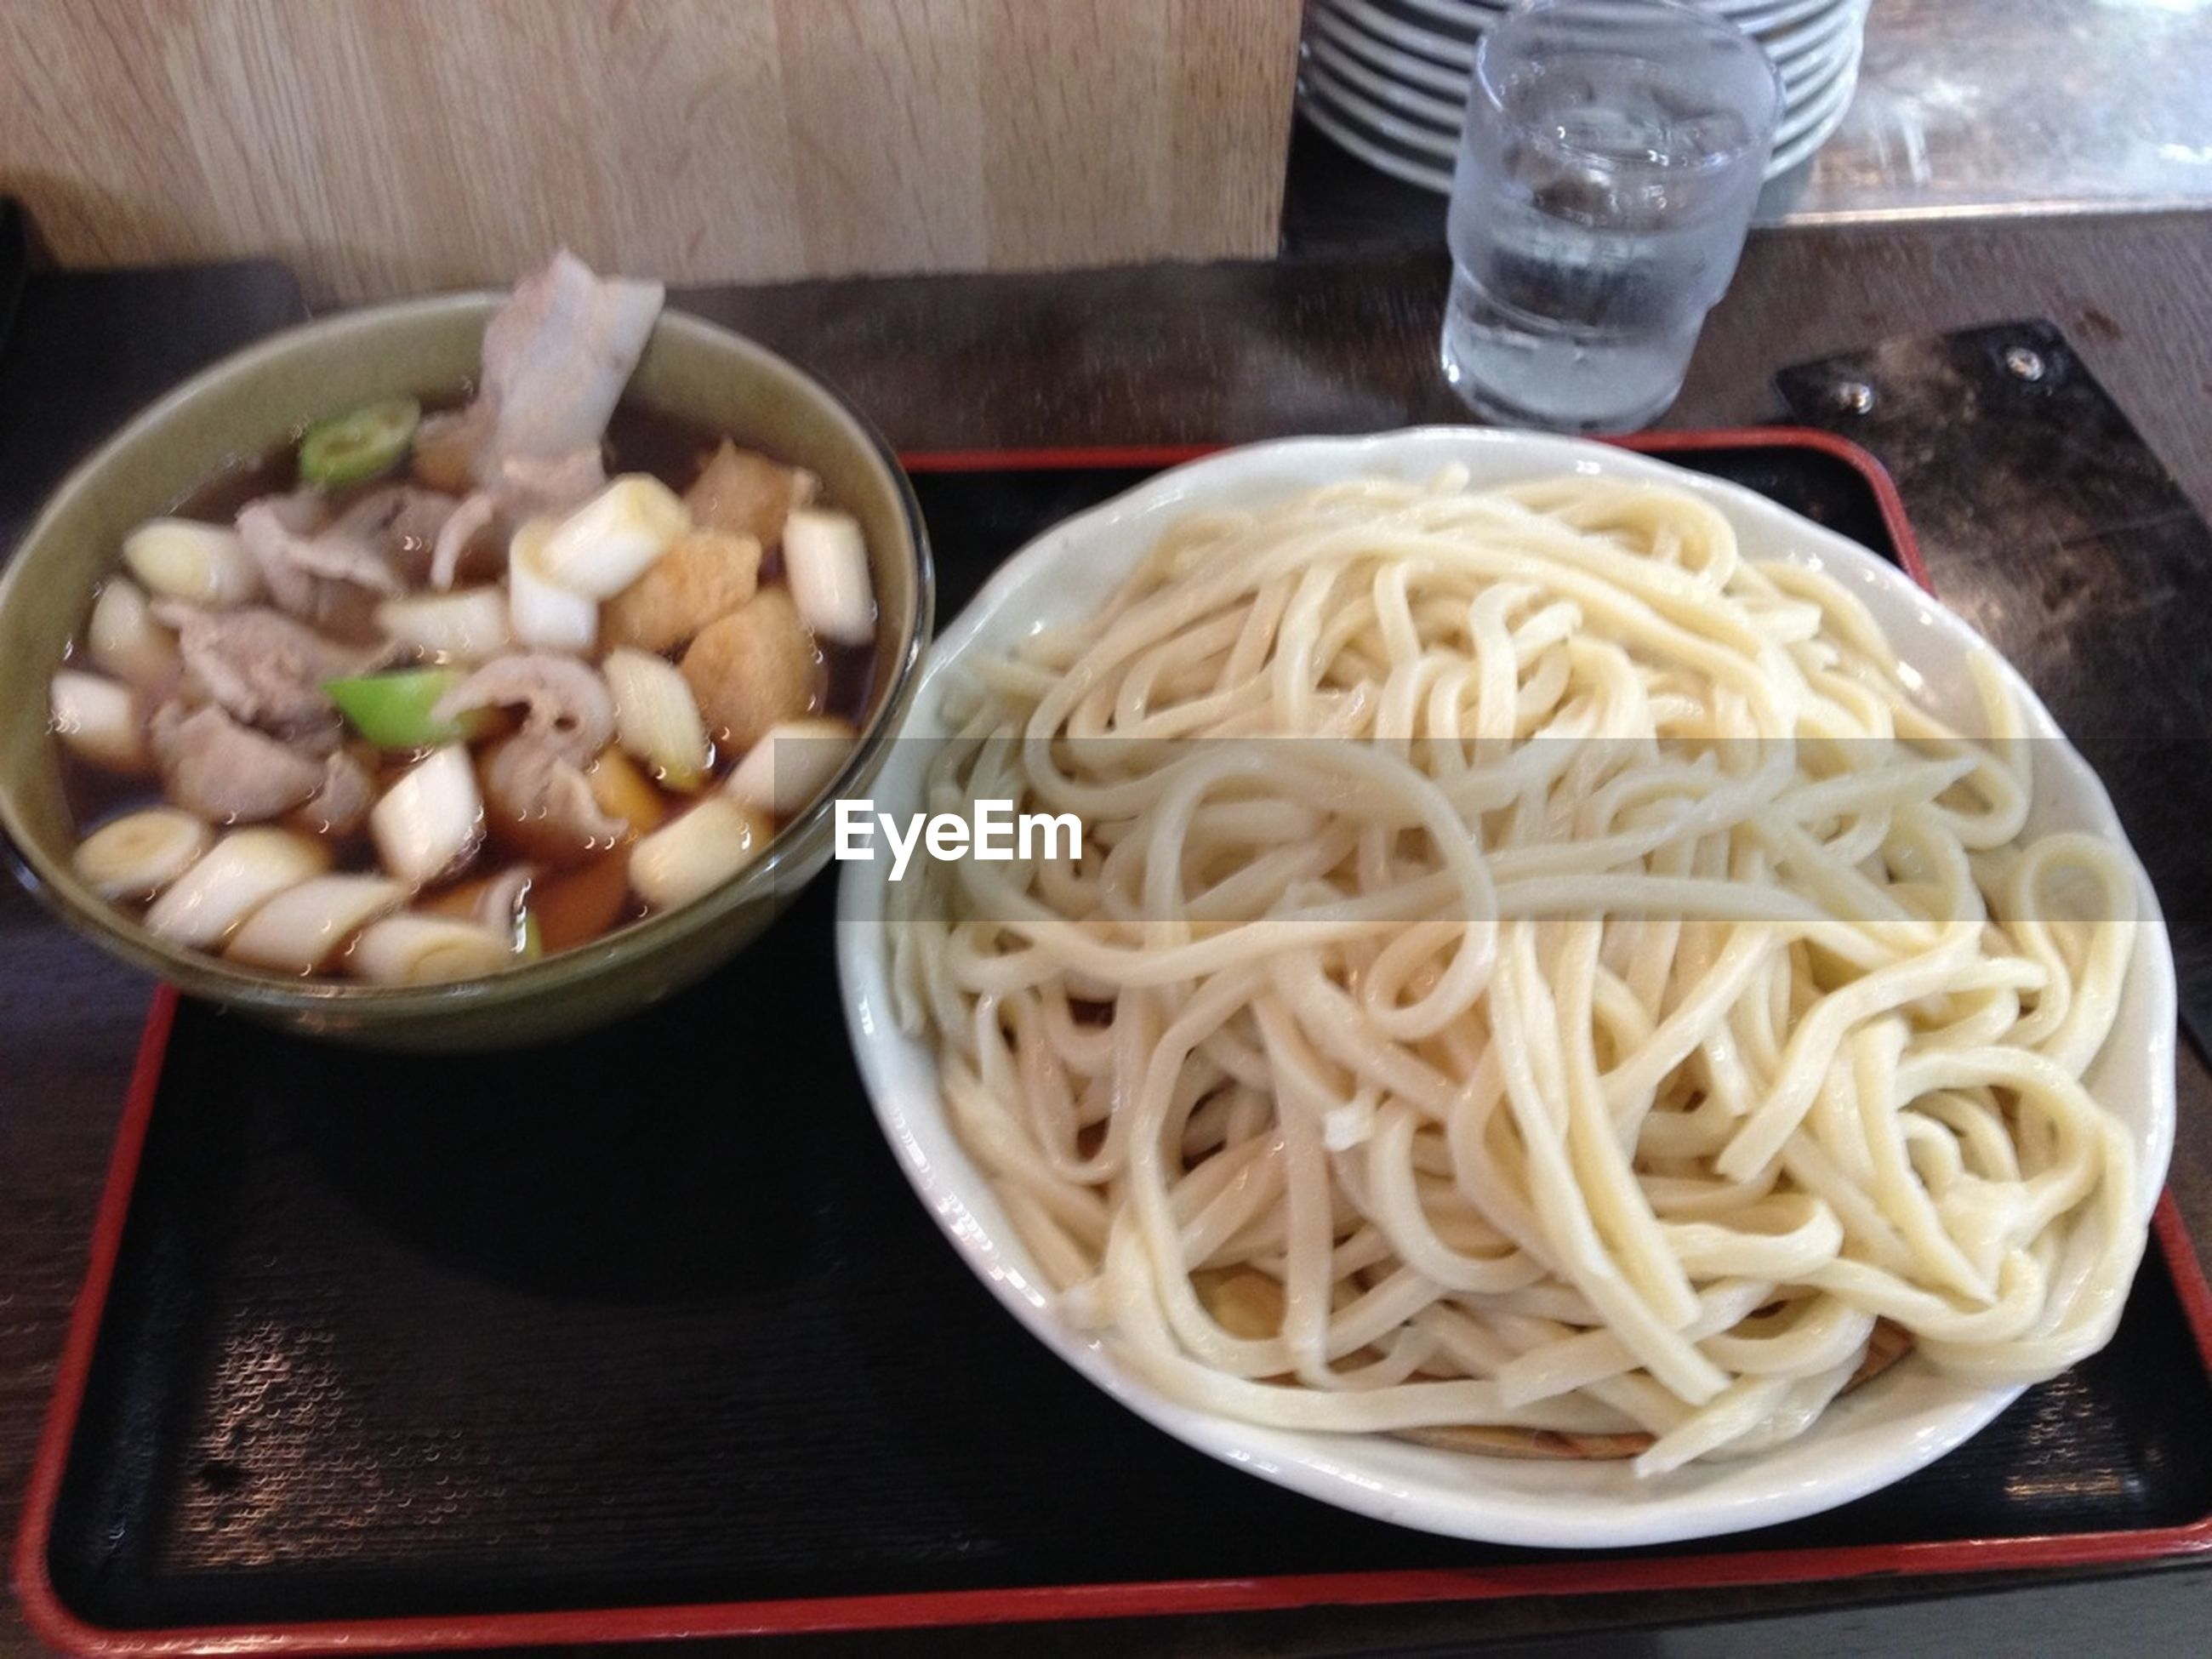 food and drink, indoors, food, freshness, noodles, bowl, ready-to-eat, healthy eating, table, still life, high angle view, plate, pasta, meal, serving size, close-up, chopsticks, vegetable, spoon, spaghetti